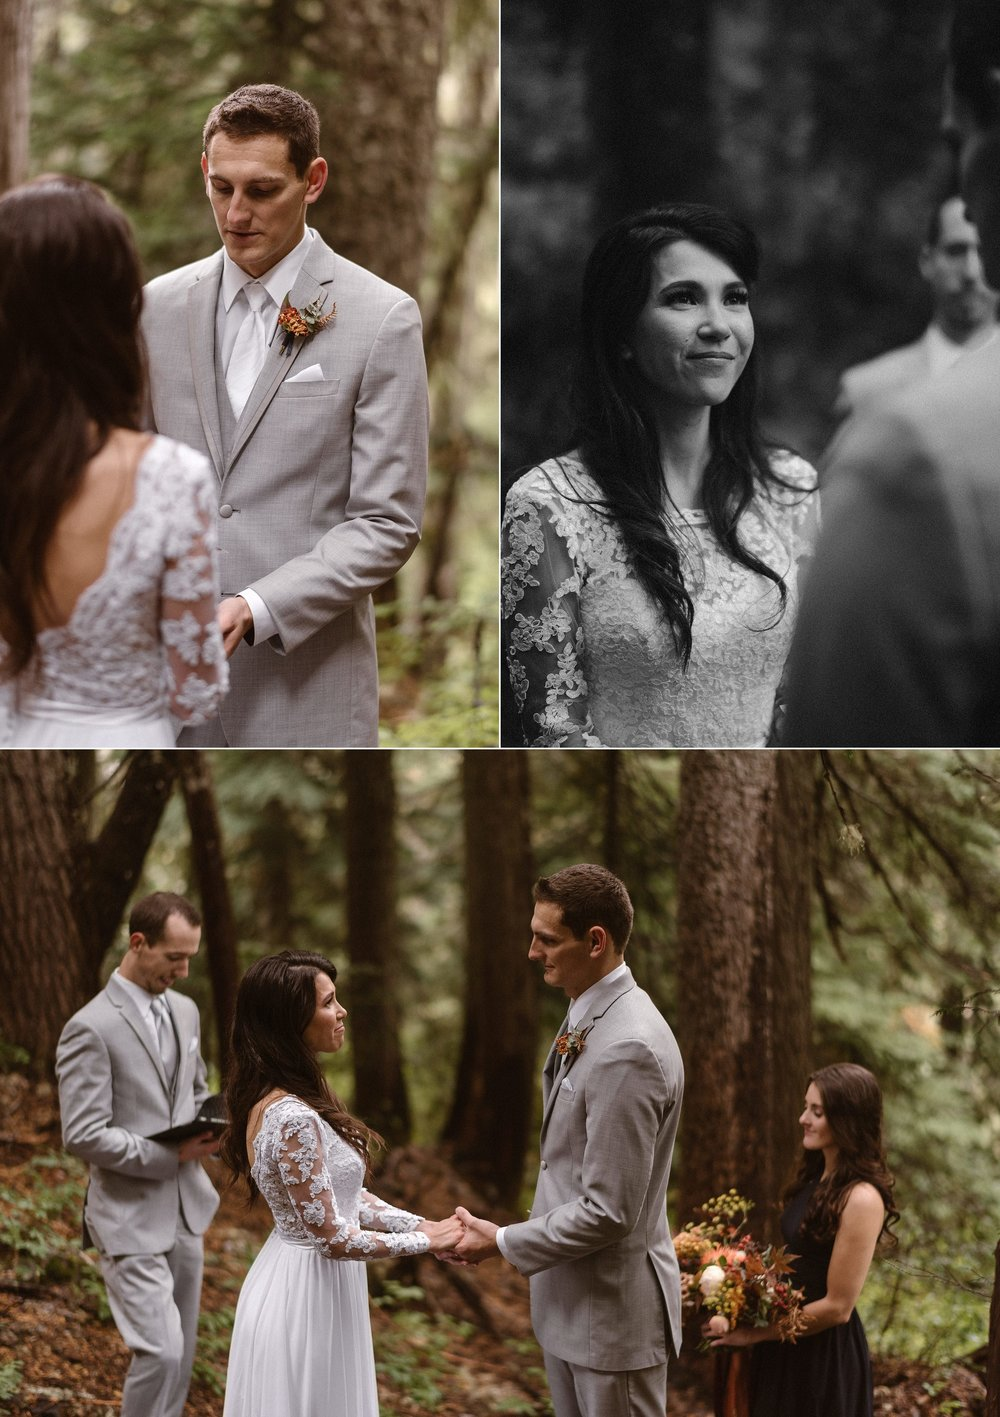 They held back tears of joy as their intimate elopement ceremony in Mount Rainier National Park among the ferns and tall trees started to come to an end. Photos of this emotional and private forest wedding by traveling wedding photographer Maddie Mae.